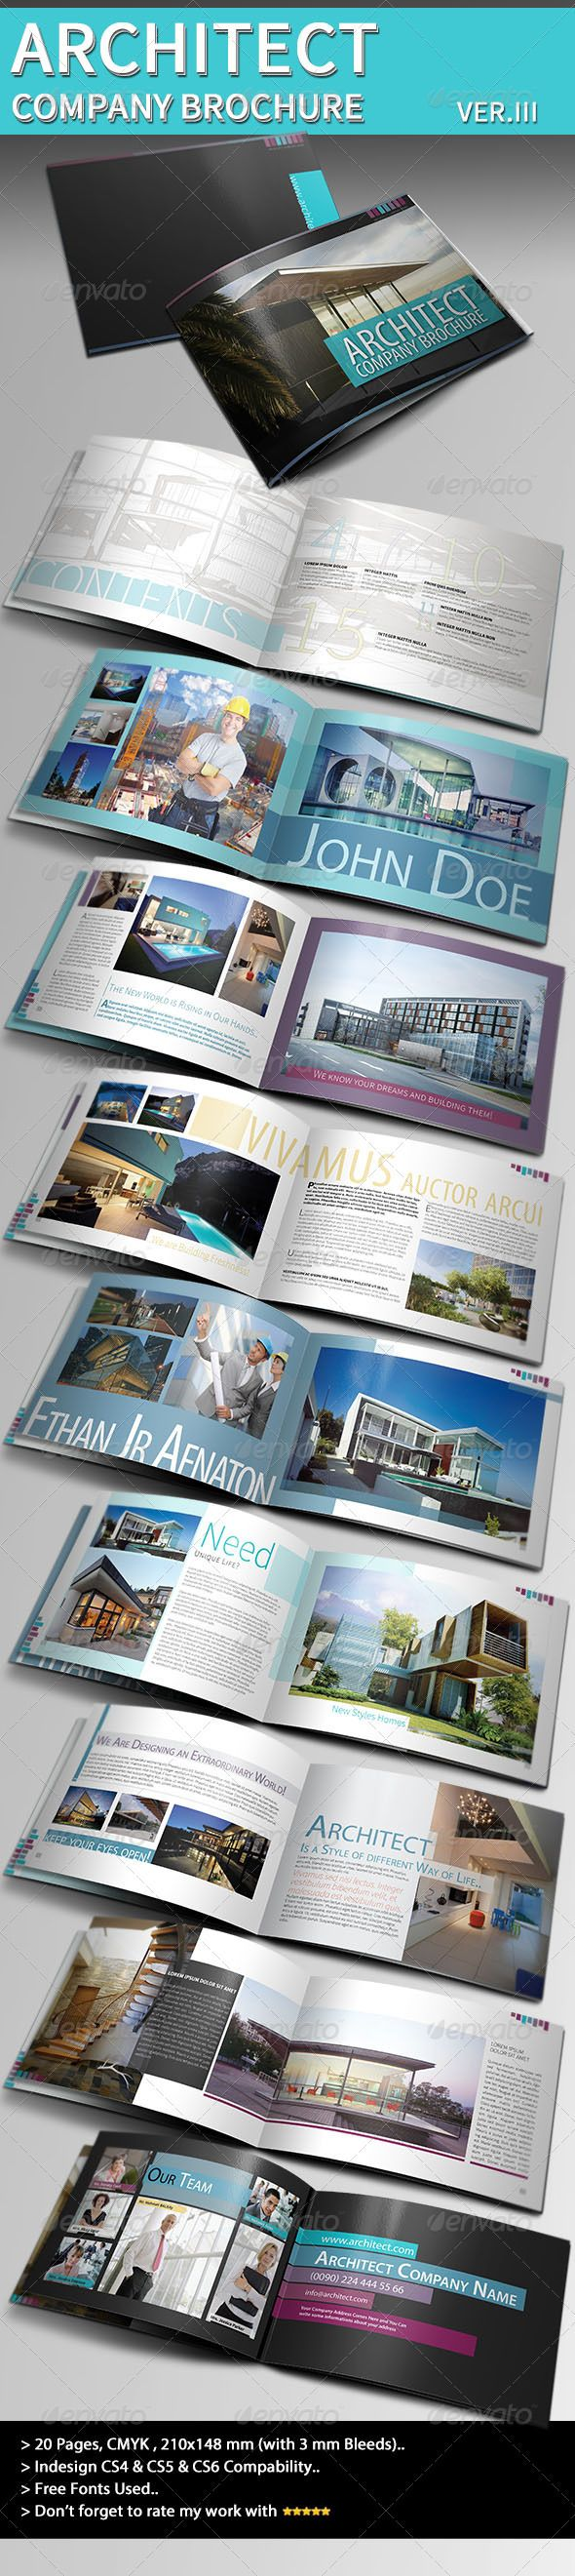 Architecture Brochure Template VerIii  Brochure Template